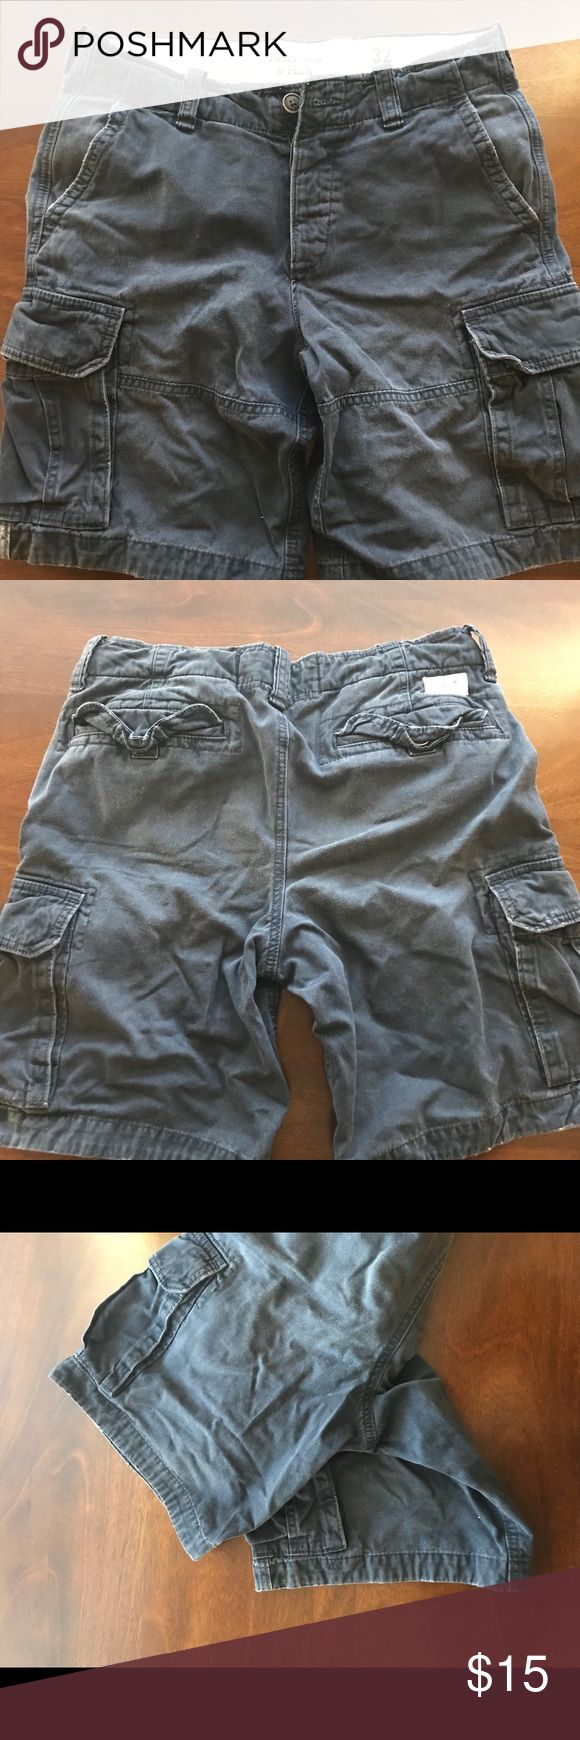 Abercrombie & Fitch cargo shorts size 32 navy blue Abercrombie and Fitch cargo shorts. Navy blue, size 32, no rips, no tears, no missing buttons, no stains. Very good worn condition. Minimal fraying Abercrombie & Fitch Shorts Cargo